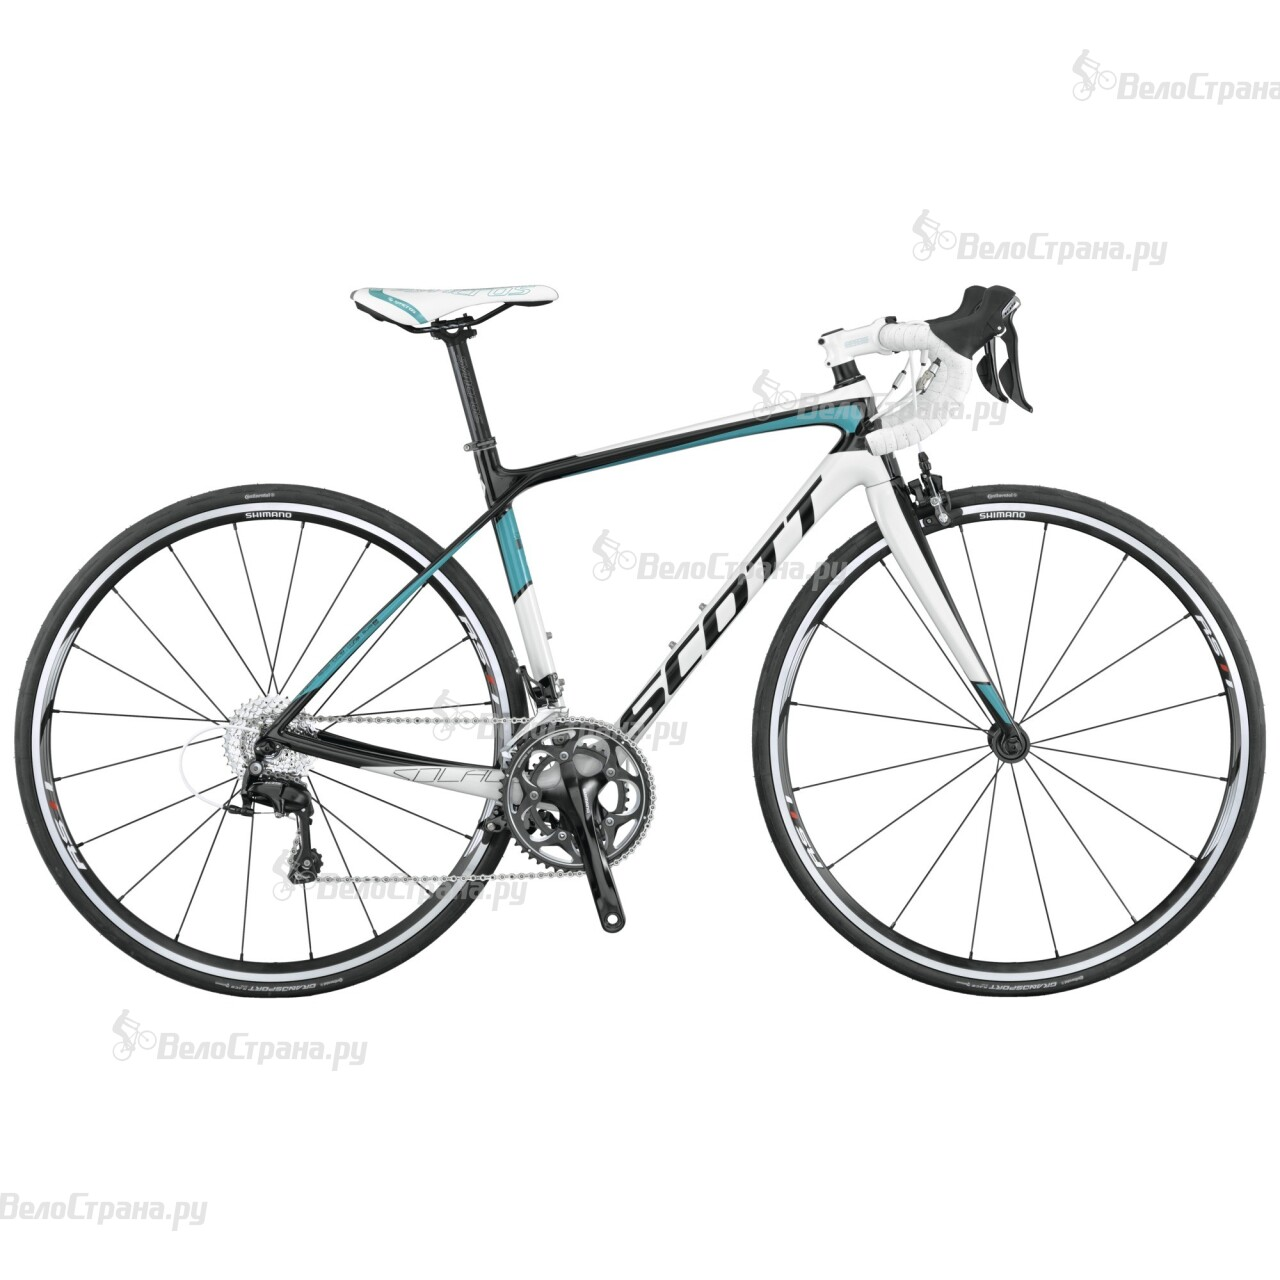 Велосипед Scott Contessa Solace 25 Compact (2015) велосипед scott solace 30 2015